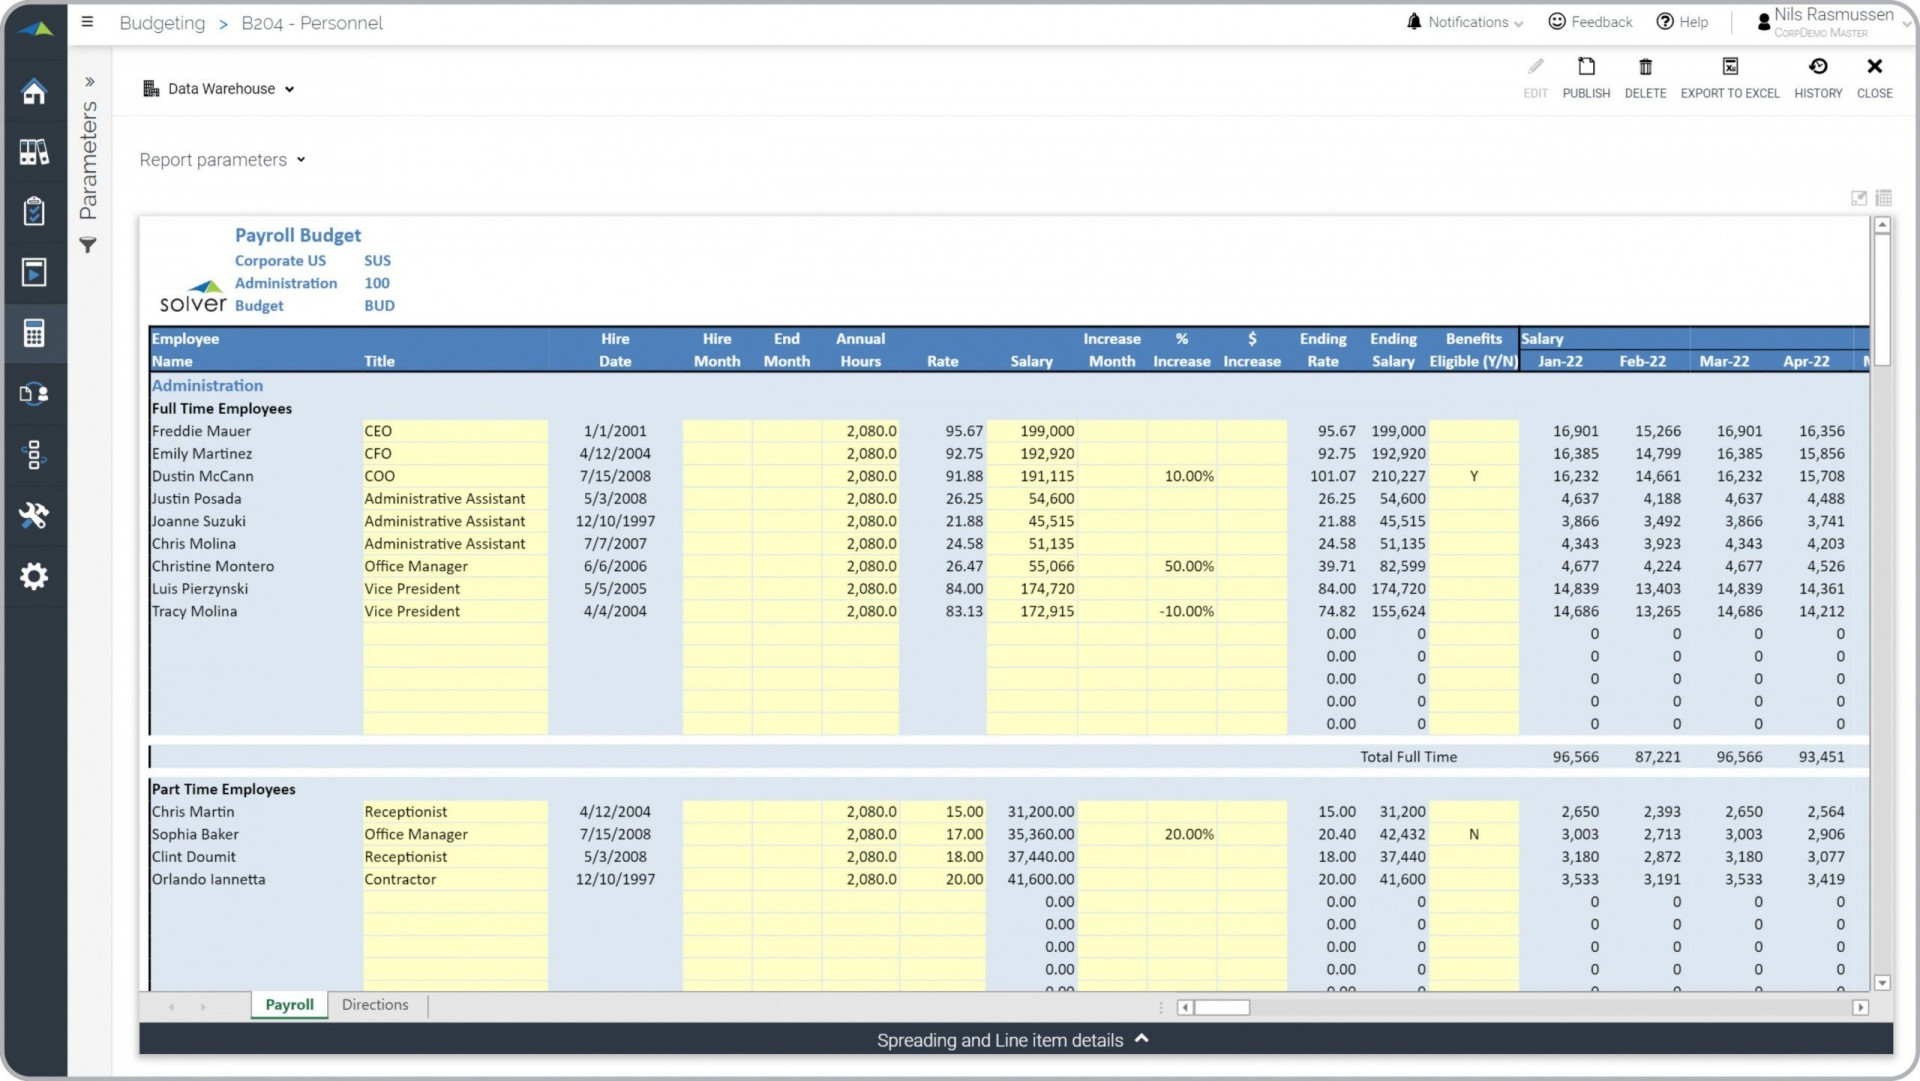 004 Astounding Monthly Budget Template Excel 2007 Photo  Personal1920